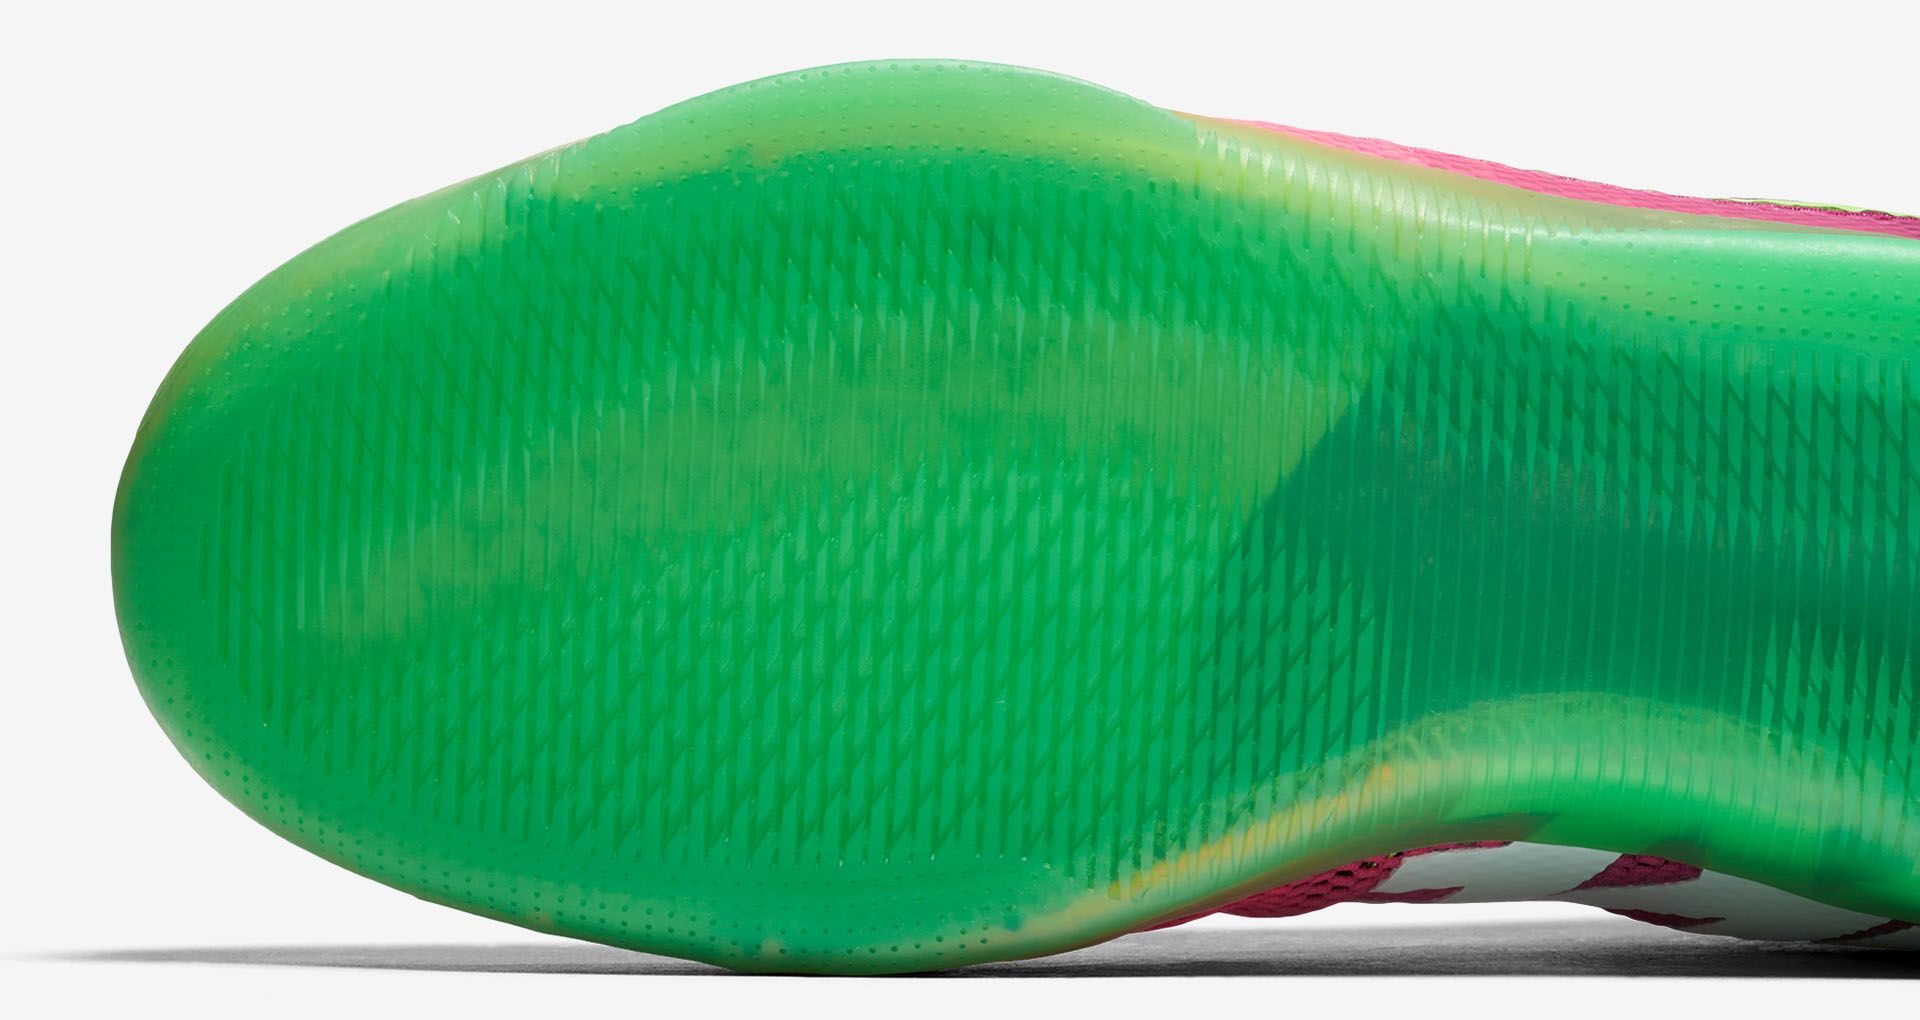 dd84564e6c27 Nike Kobe 11 Mambacurial  Pink Flash   Action Green  Release Date ...